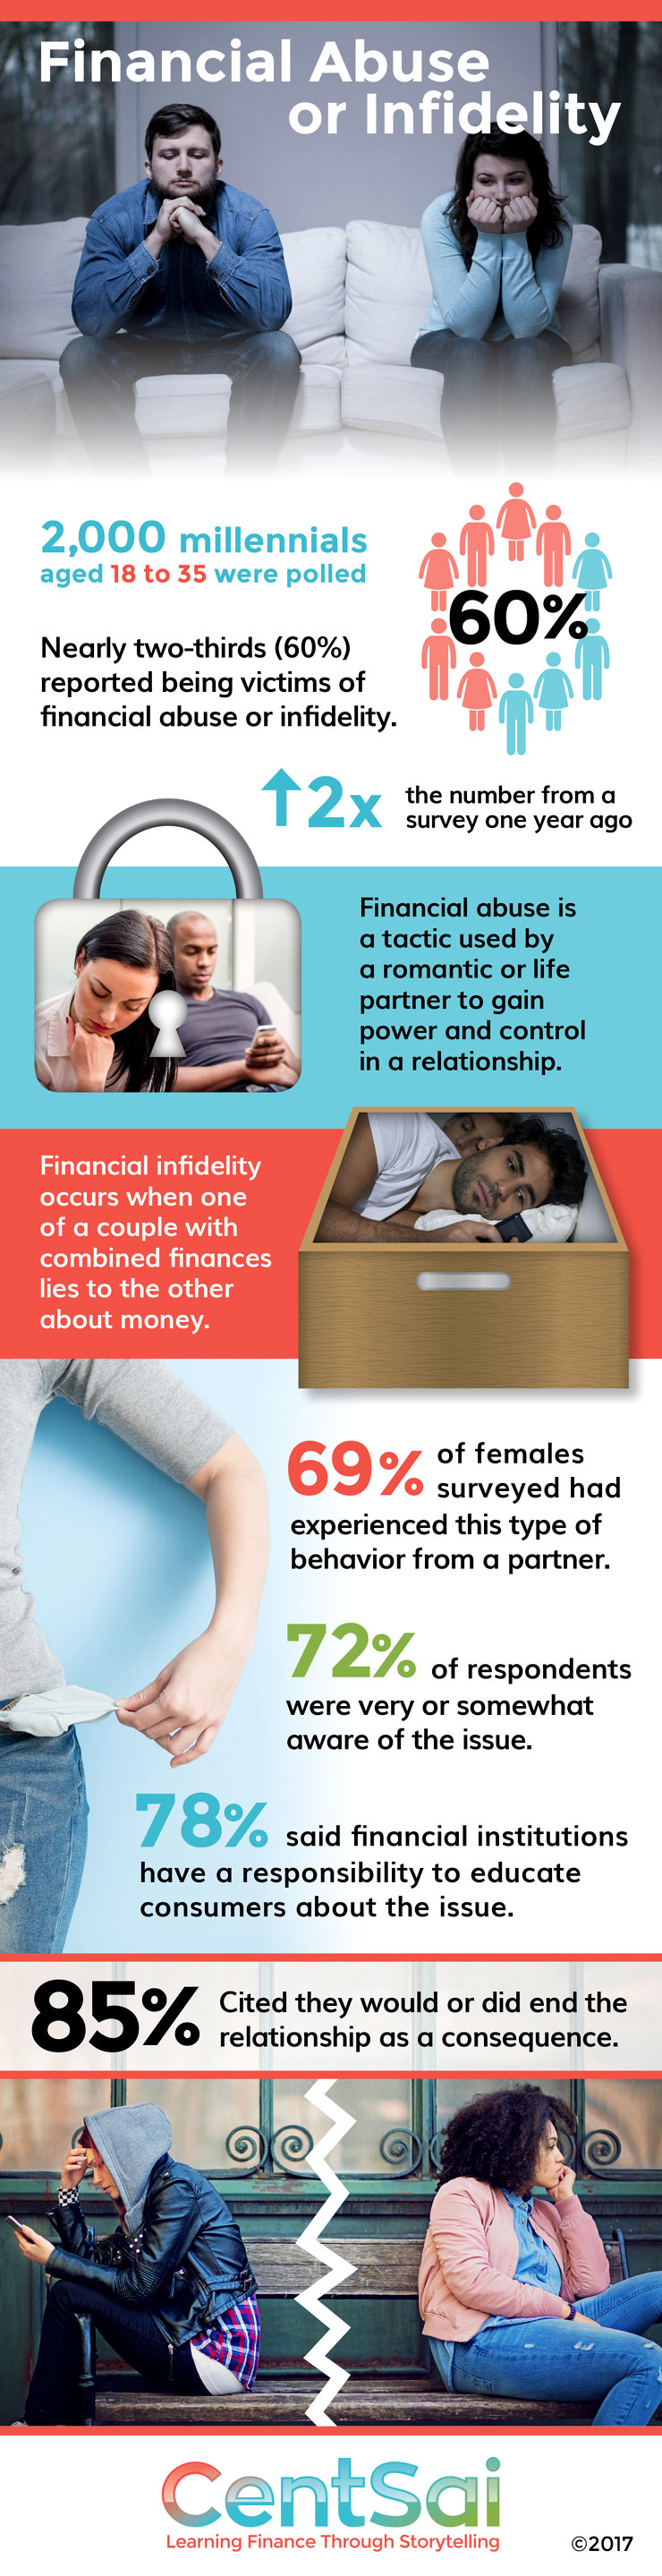 Financial Abuse in Millennial Relationships Infographic